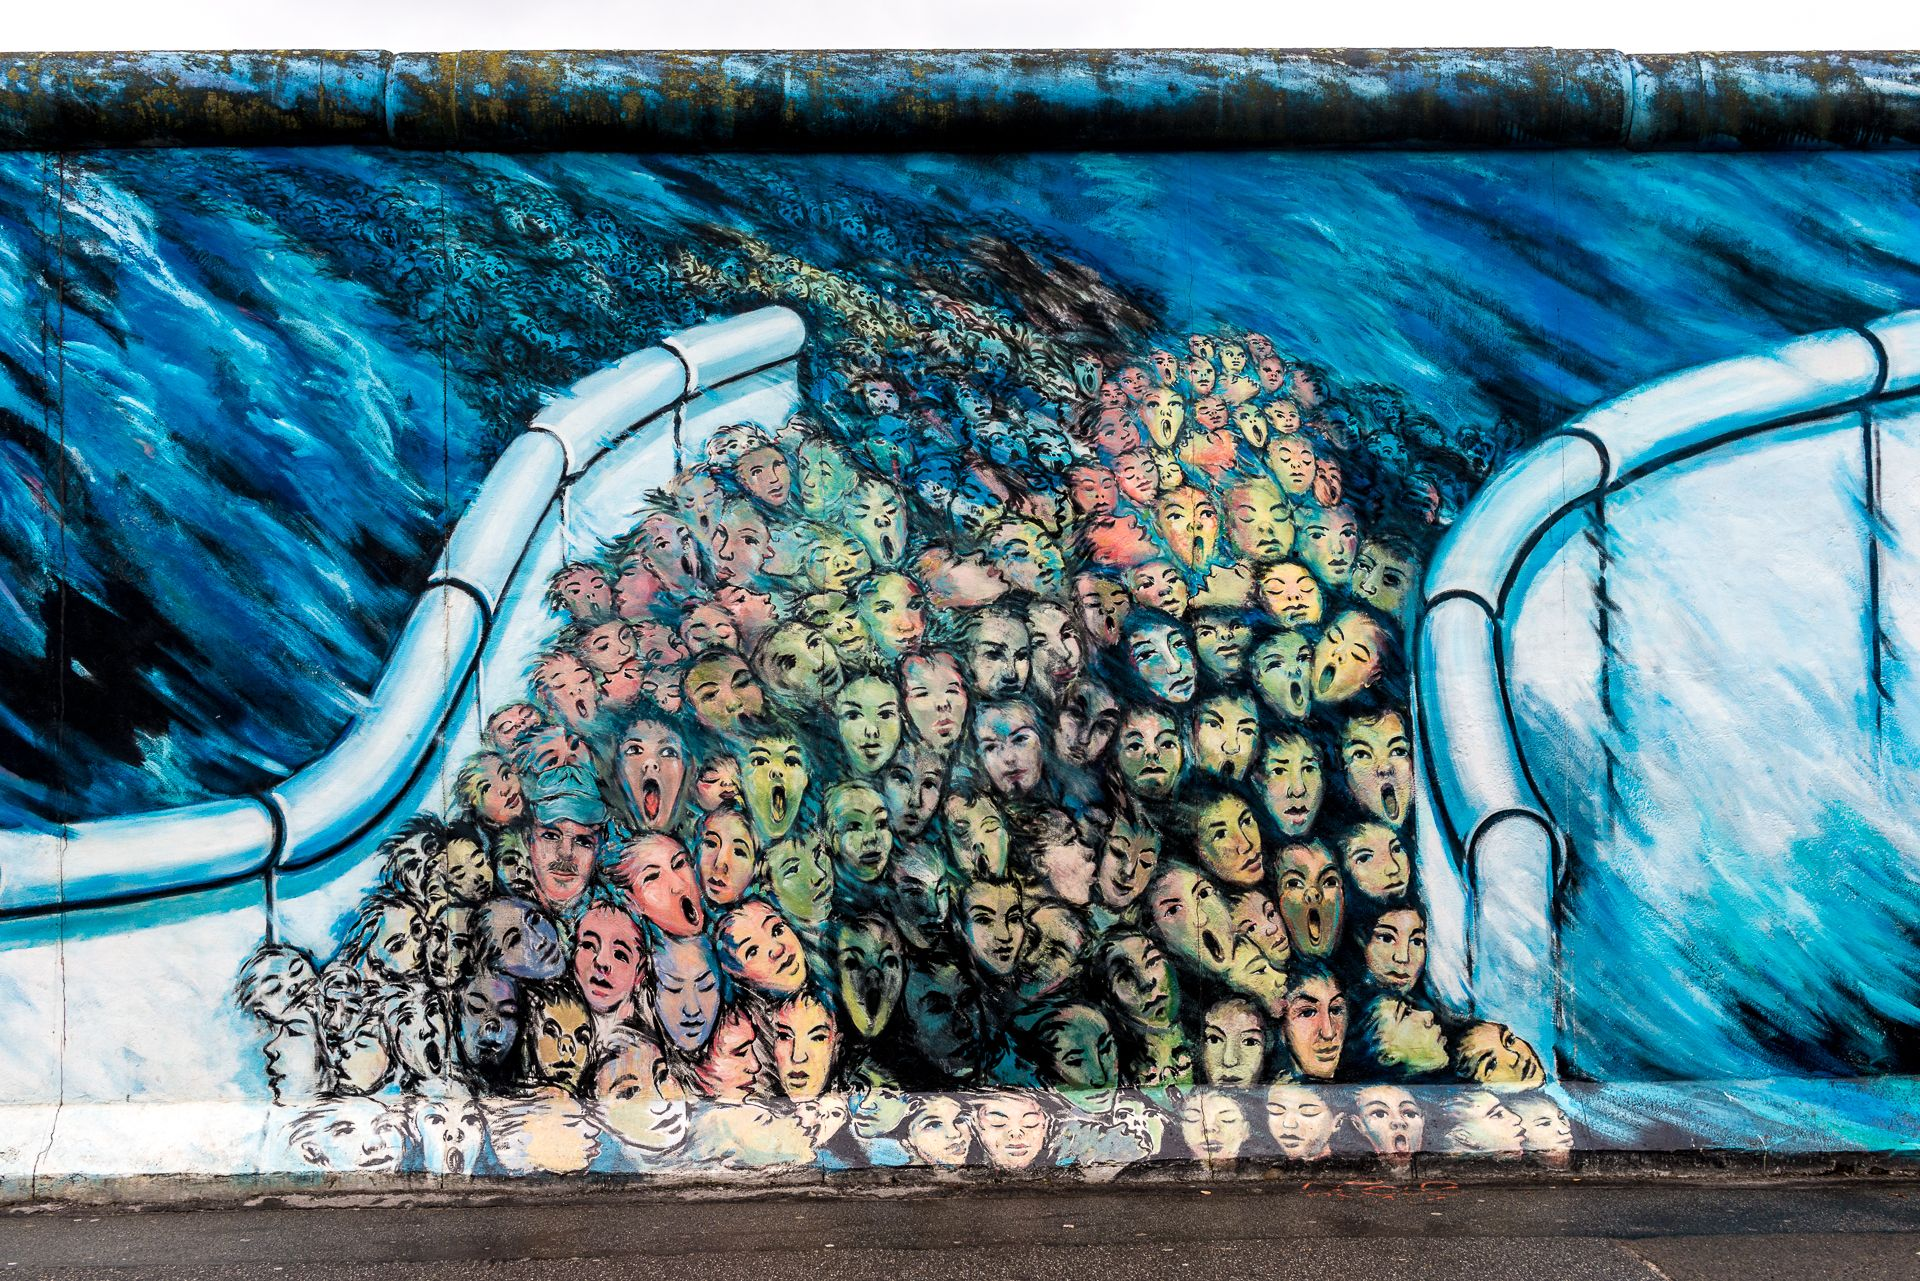 Berlin S East Side Gallery A Symbol Of Unity In A City Once Separated Berlin Wall East Side Gallery Berlin Street